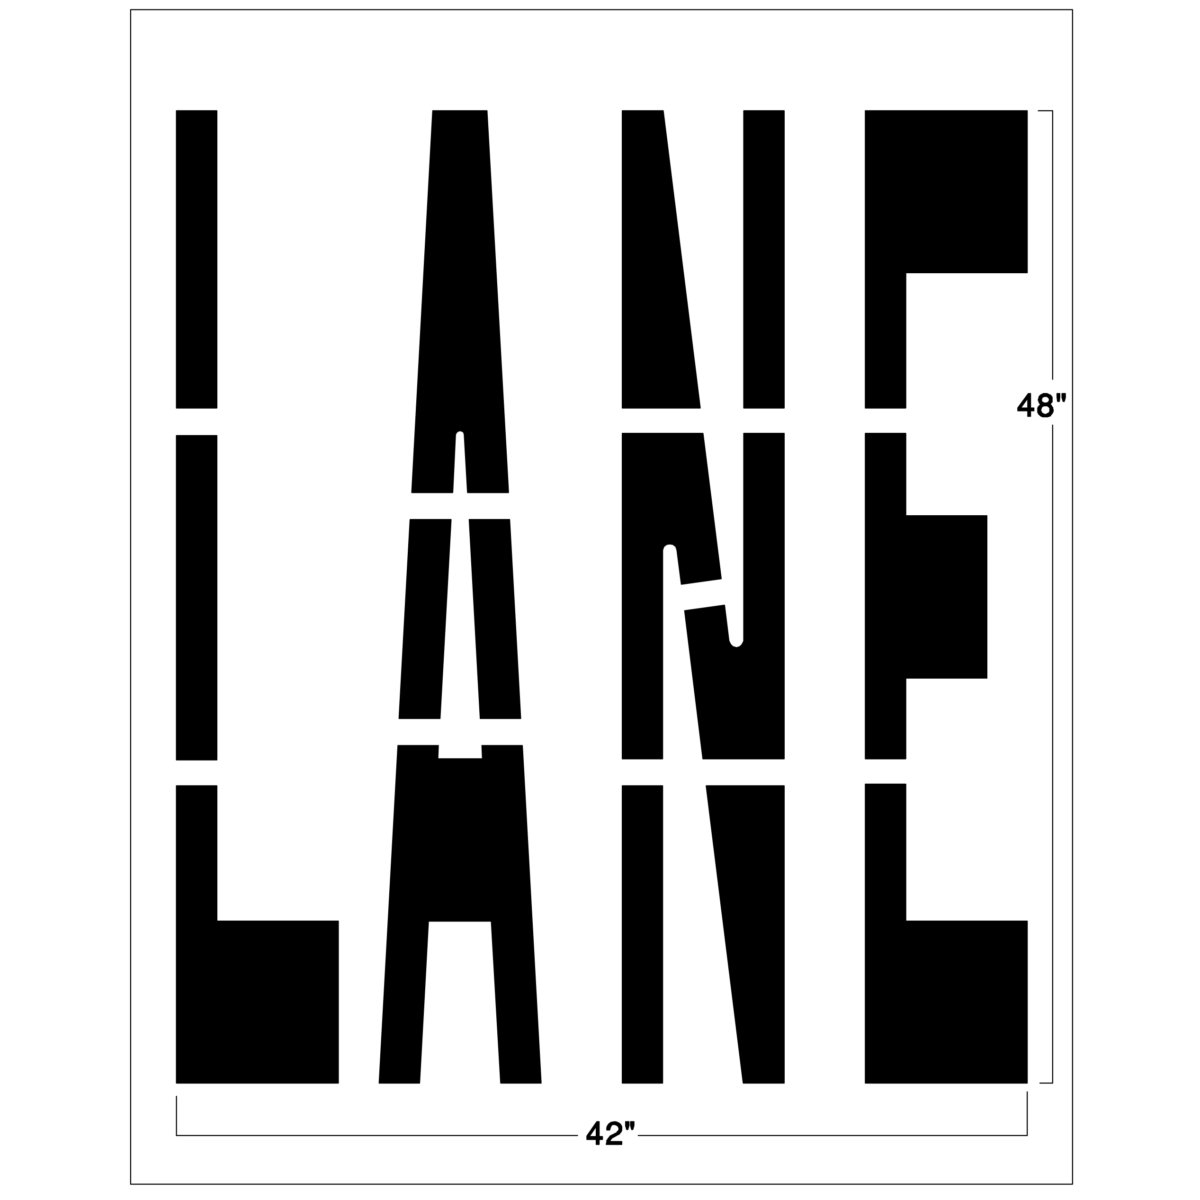 """Our 48"""" Federal LANE Symbol stencil can be used to mark bike lanes, HOV lanes and other specialized lanes . Each road marking stencil is made of our thick, durable PolyTough™ plastic and meets Federal and DOT specifications.Use this lane road safety sign over and over again with a crisp clean line every time.Pairs well with our <a href=""""https://www.newstripe.com/product/48-inch-federal-bike/"""">federal bike stencil</a>. <strong><u>1/8″ (125mil) – Professional grade</u></strong> <ul> <li>The thickest and most durable stencil</li> <li>Will last a lifetime with proper care</li> <li>Ideal for repetitive daily use</li> <li>Can use high pressure hose for easy cleaning</li> <li>Lays flat and stays flat</li> <li><em>Lifetime warranty</em></li> </ul> <strong><u>1/16″(63mil) – Light-Duty</u></strong> <ul> <li>Economical and flexible</li> <li>Easy to clean</li> <li>Great for curves and uneven surfaces</li> <li>Perfect for one time projects or occasional use</li> </ul>"""